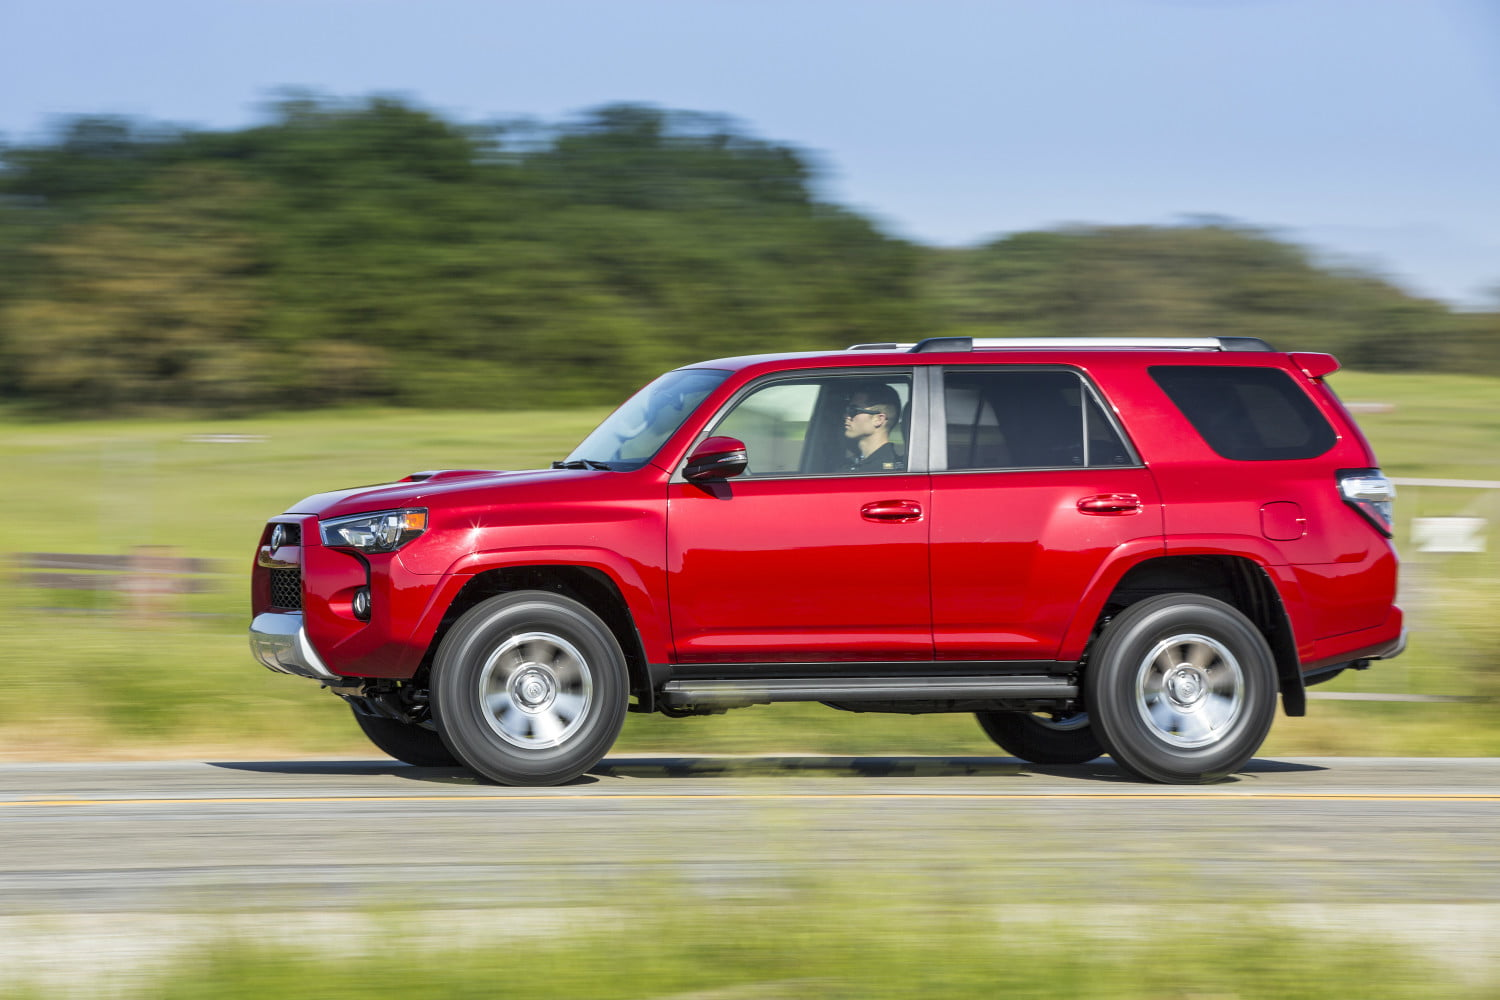 2018 toyota 4runner specs release date price performance 09